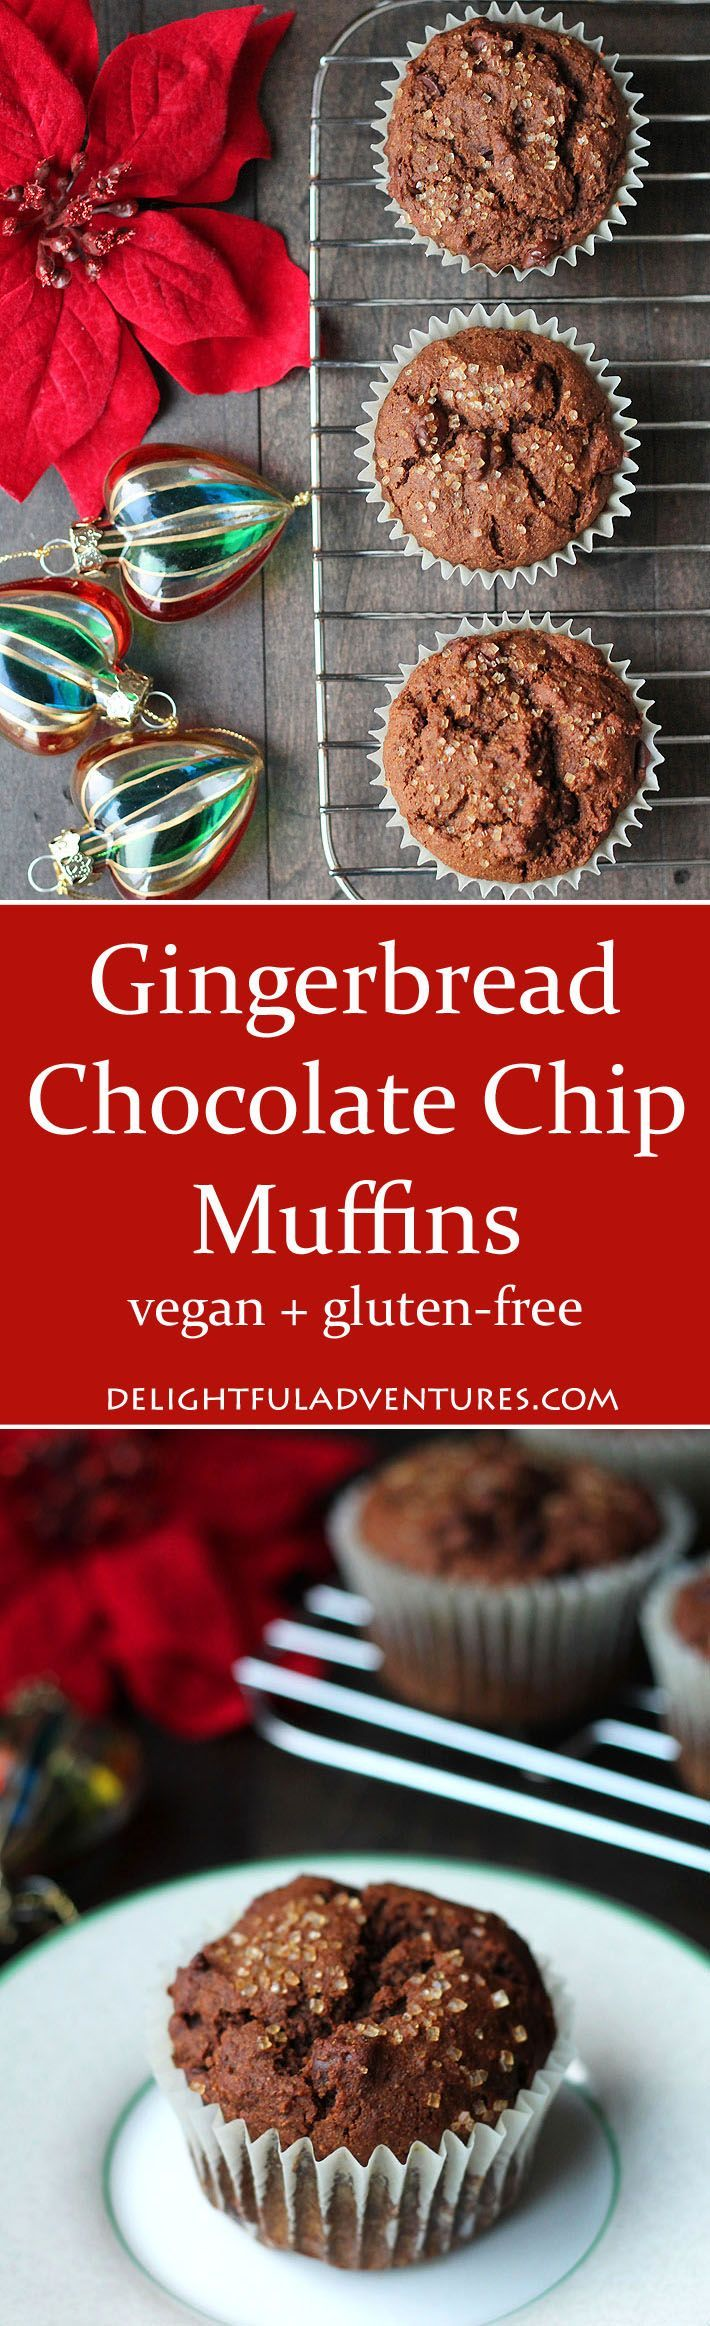 Spicy, sweet, and perfect for the holiday season, these vegan gluten free gingerbread muffins are great for serving to family and friends. via @delighfuladv #vegan #veganglutenfree #gingerbread #vegangingerbread #veganmuffins